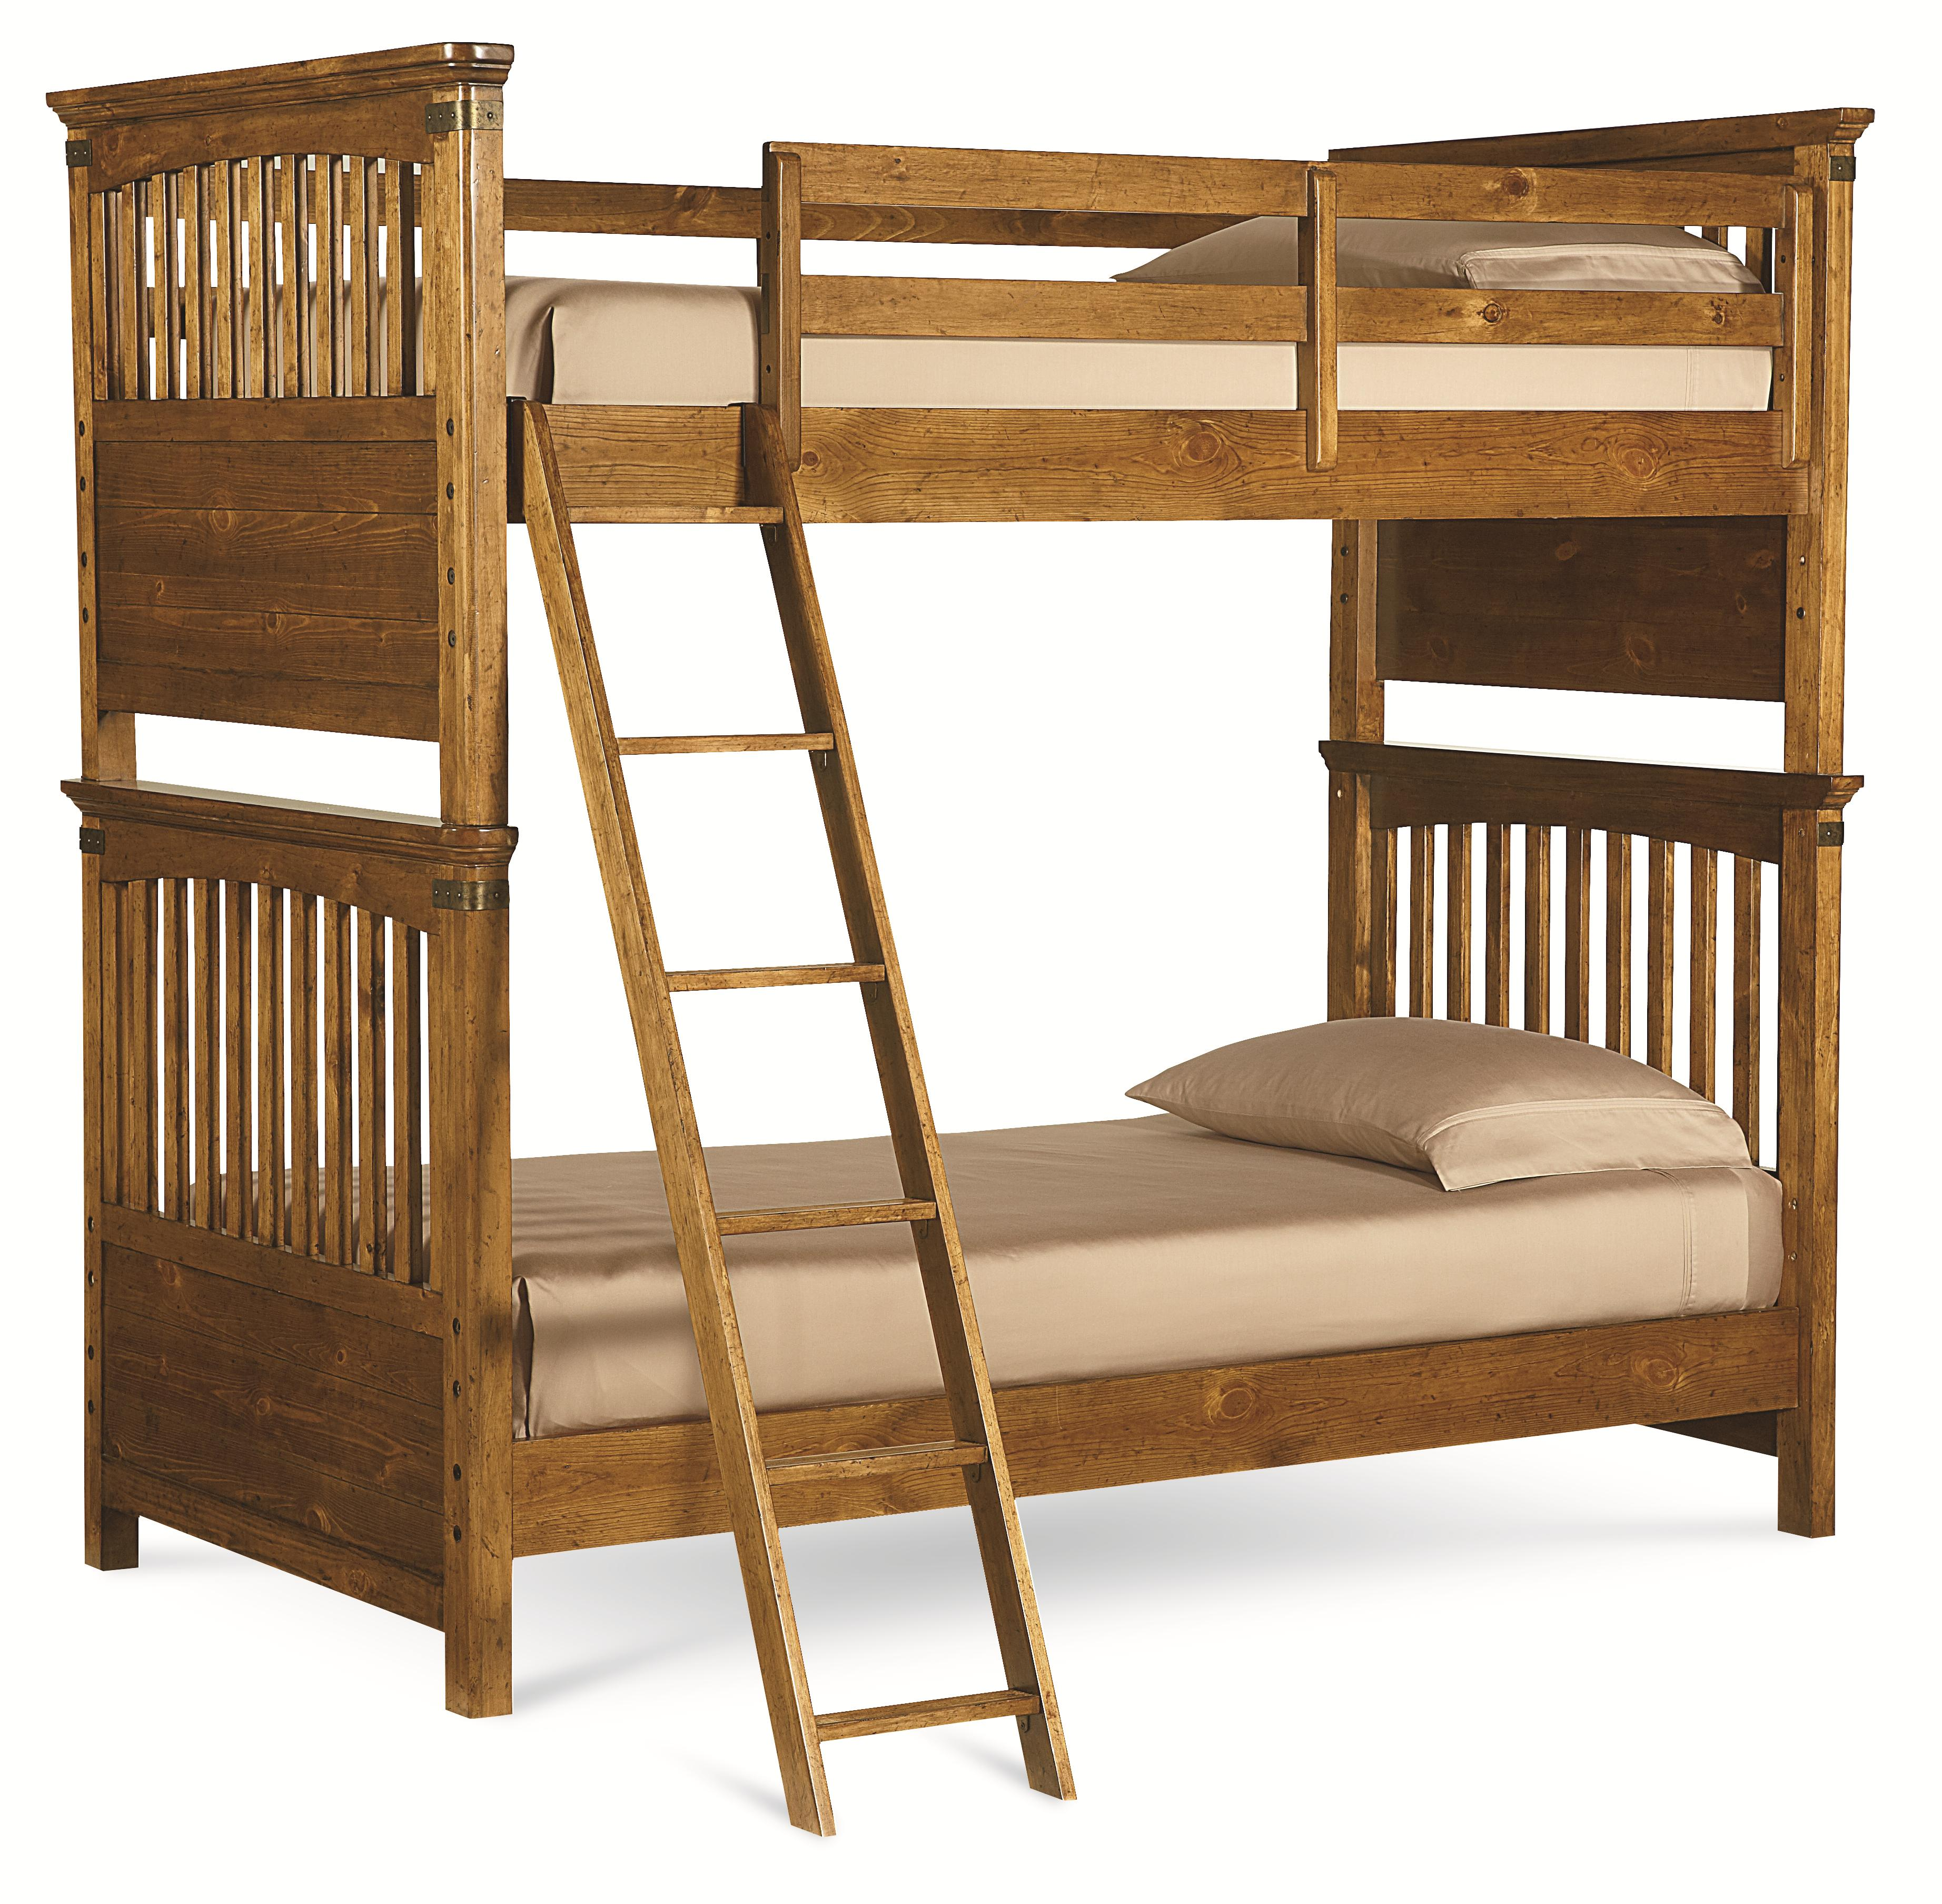 Legacy Classic Kids Bryce Canyon Twin Over Twin Bunk Bed - Item Number: 3900-8110K